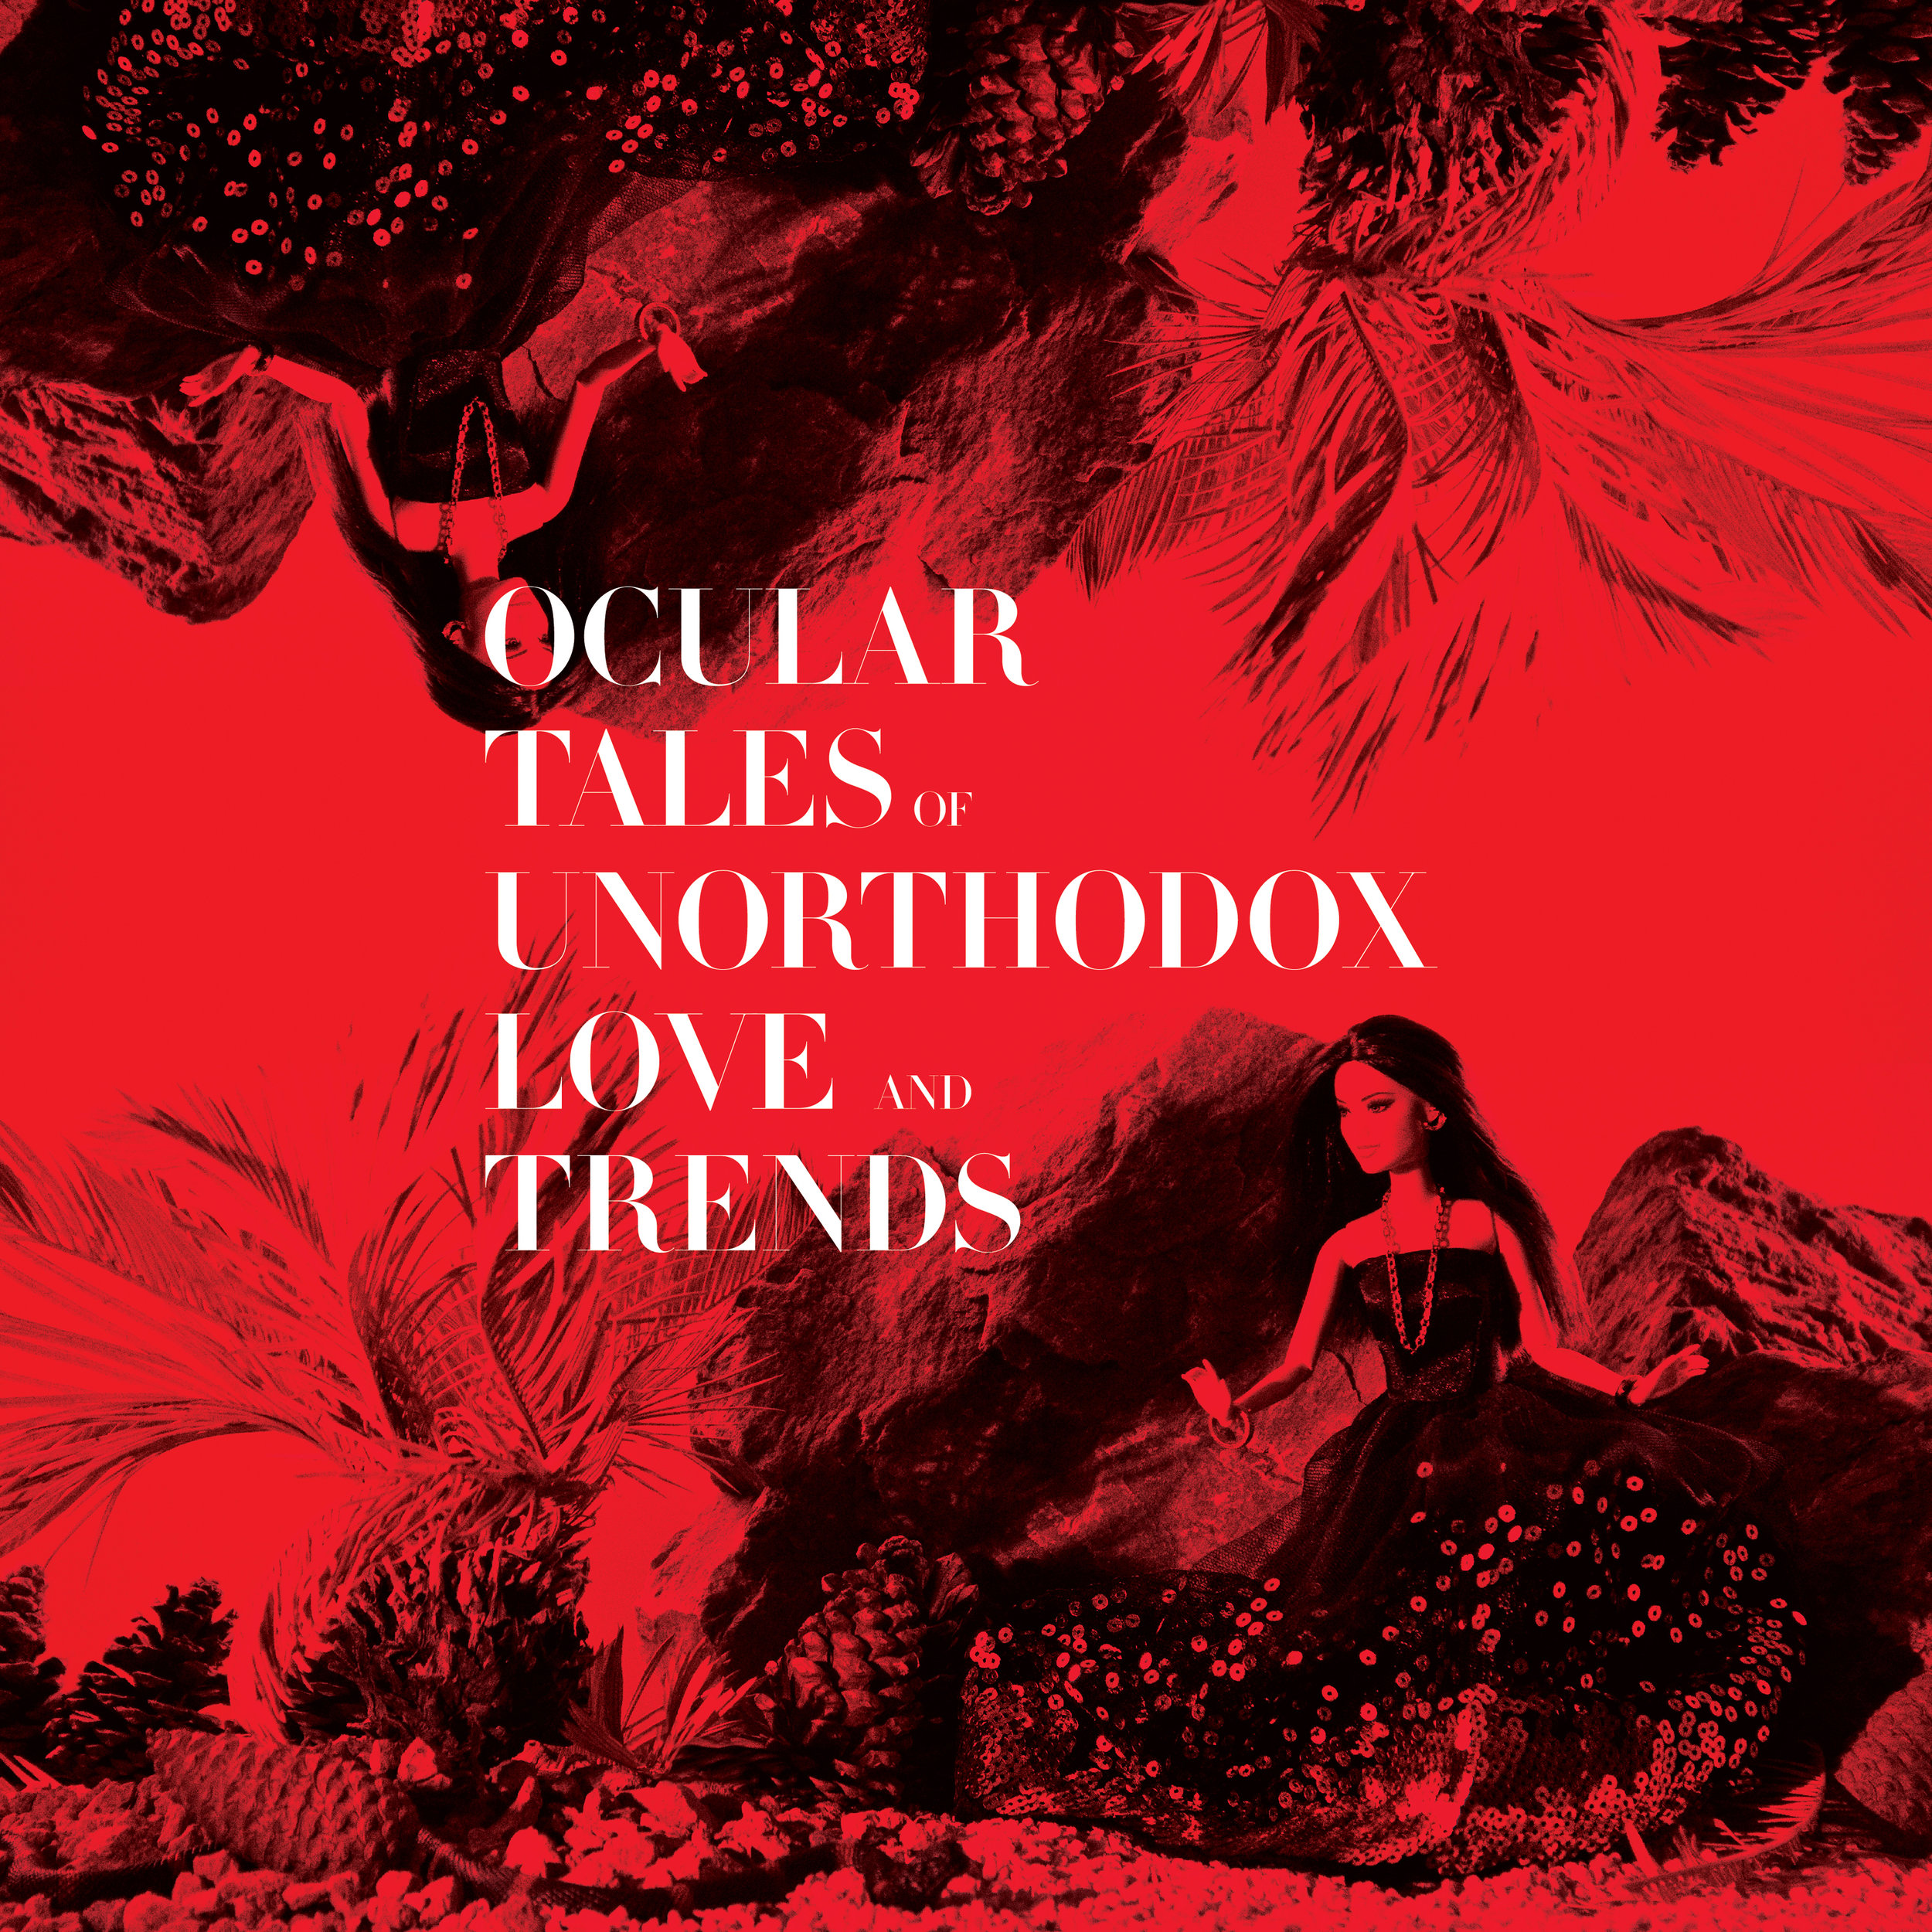 ocular tales of unorthodox love and trends  photo-book cover + spreads